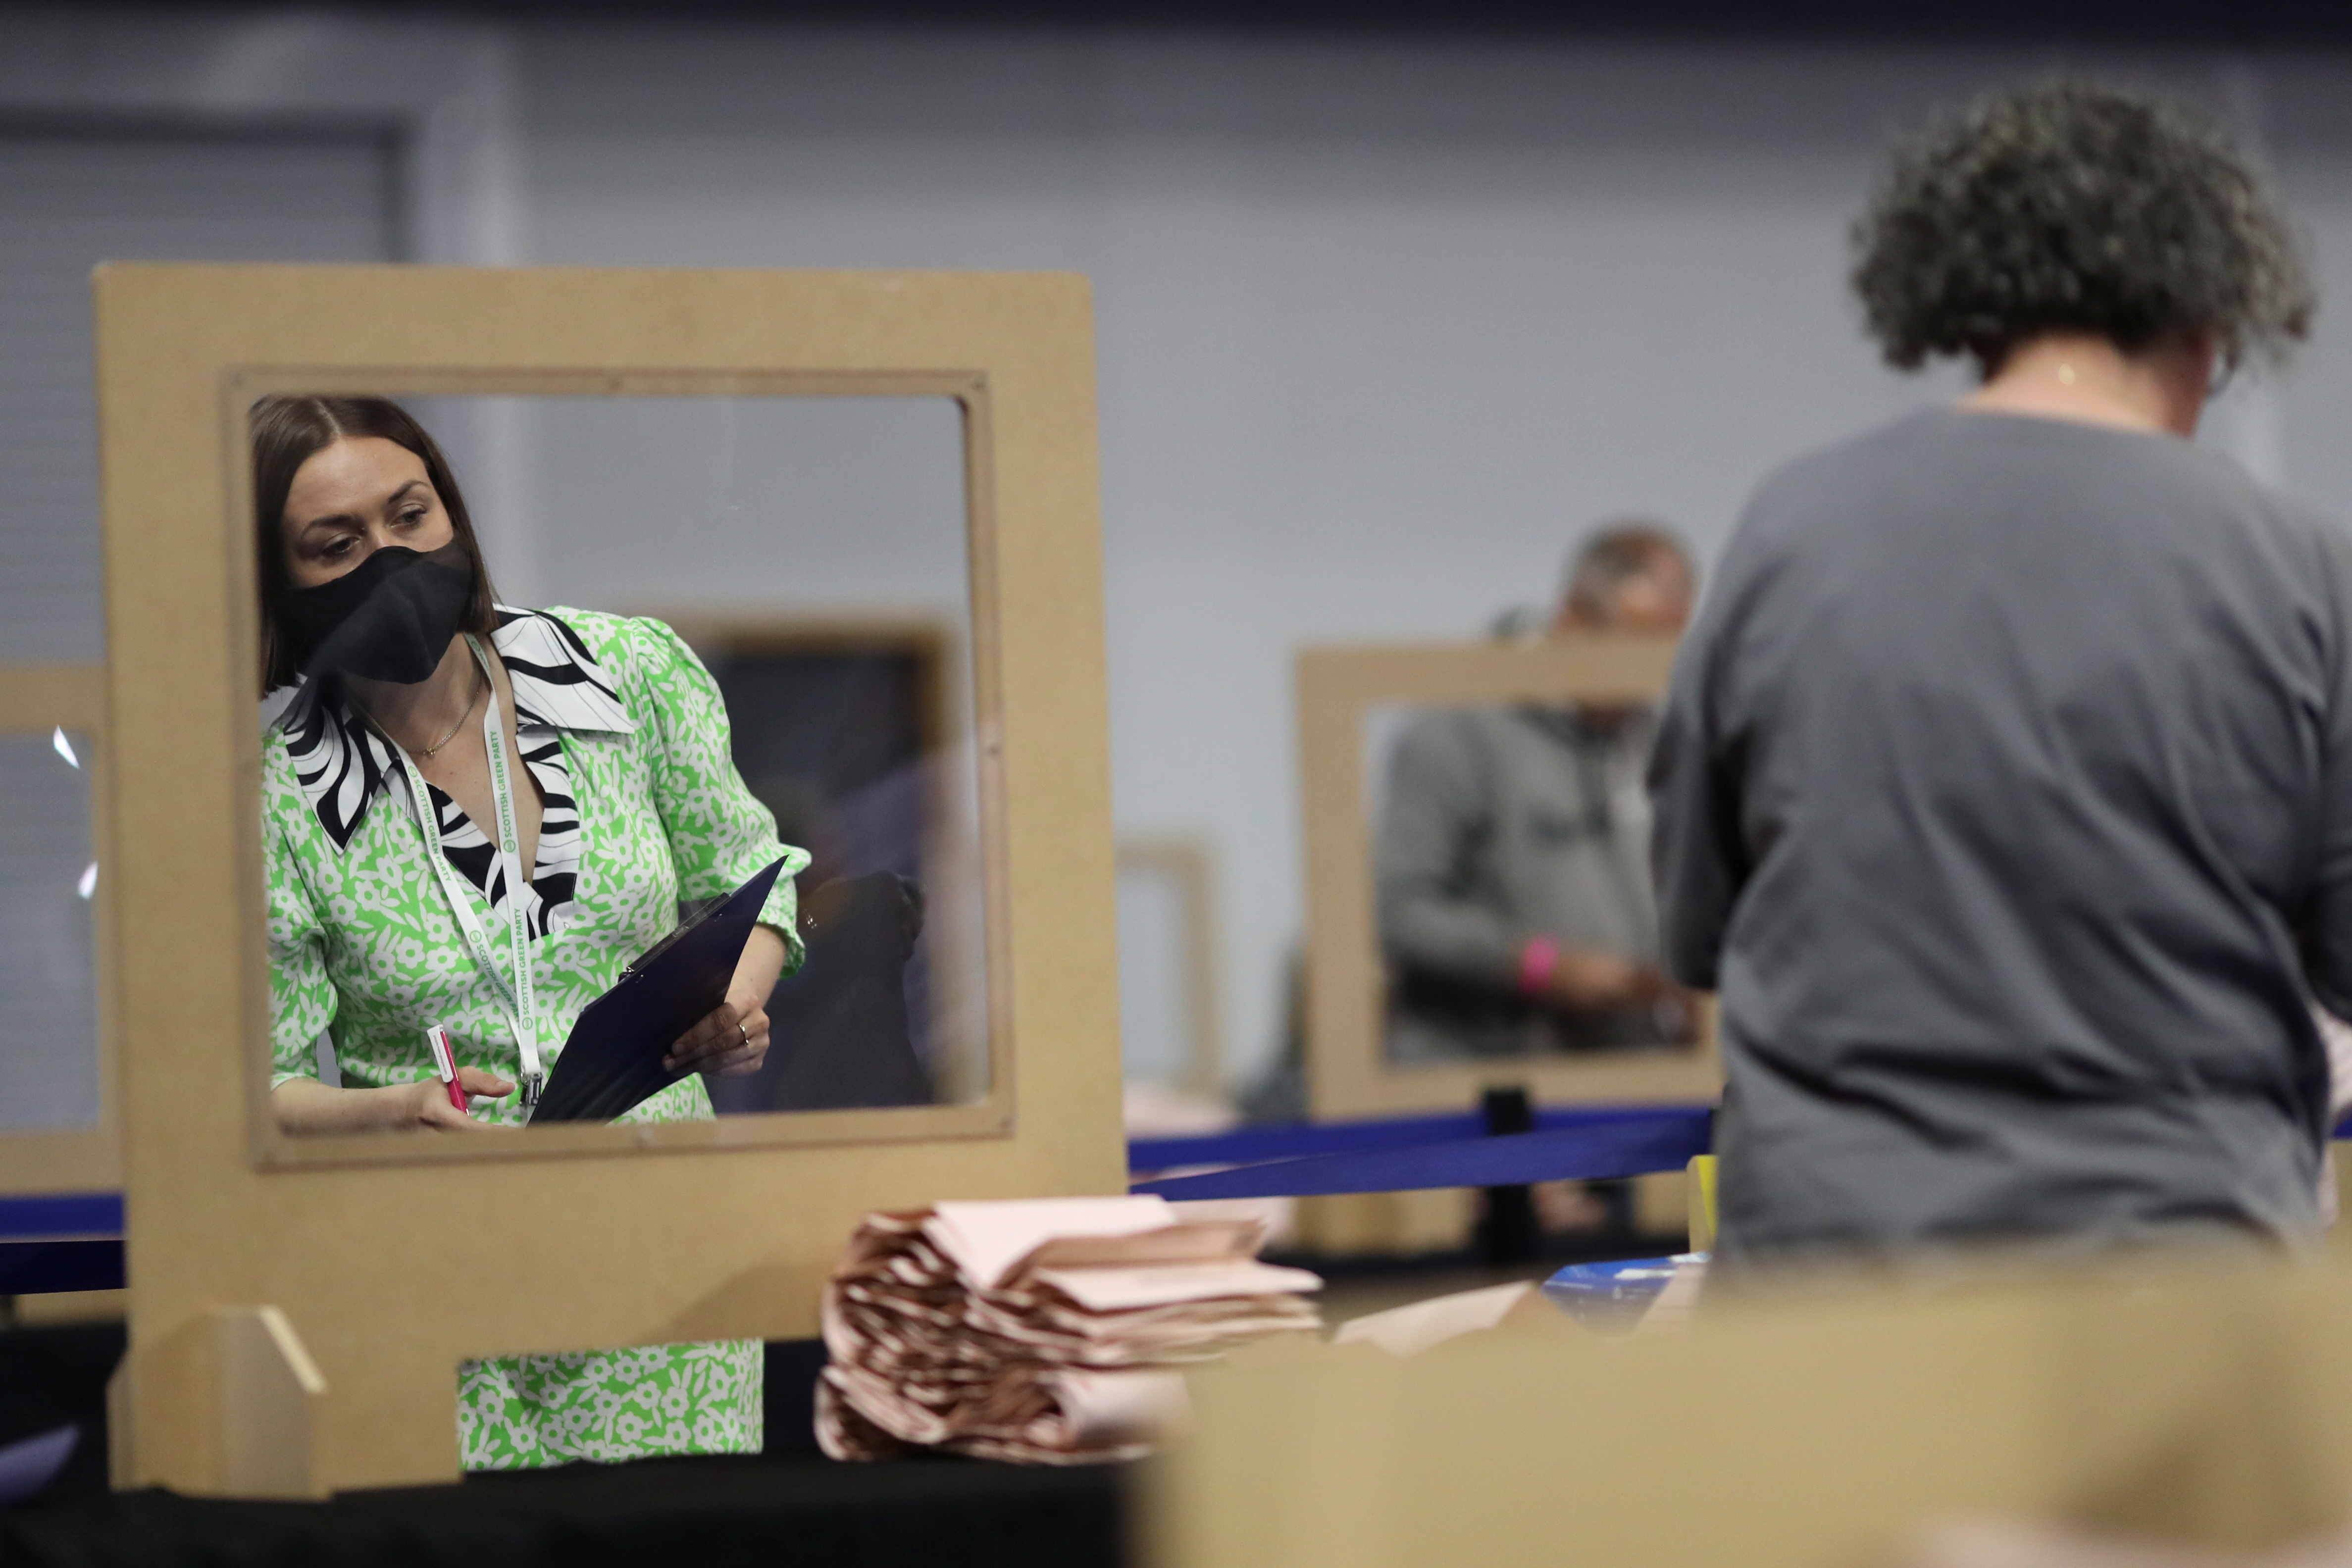 A woman watches as an election staff member counts votes for the Scottish Parliamentary election at a counting centre in Glasgow, Scotland, Britain, May 8, 2021. REUTERS/Russell Cheyne